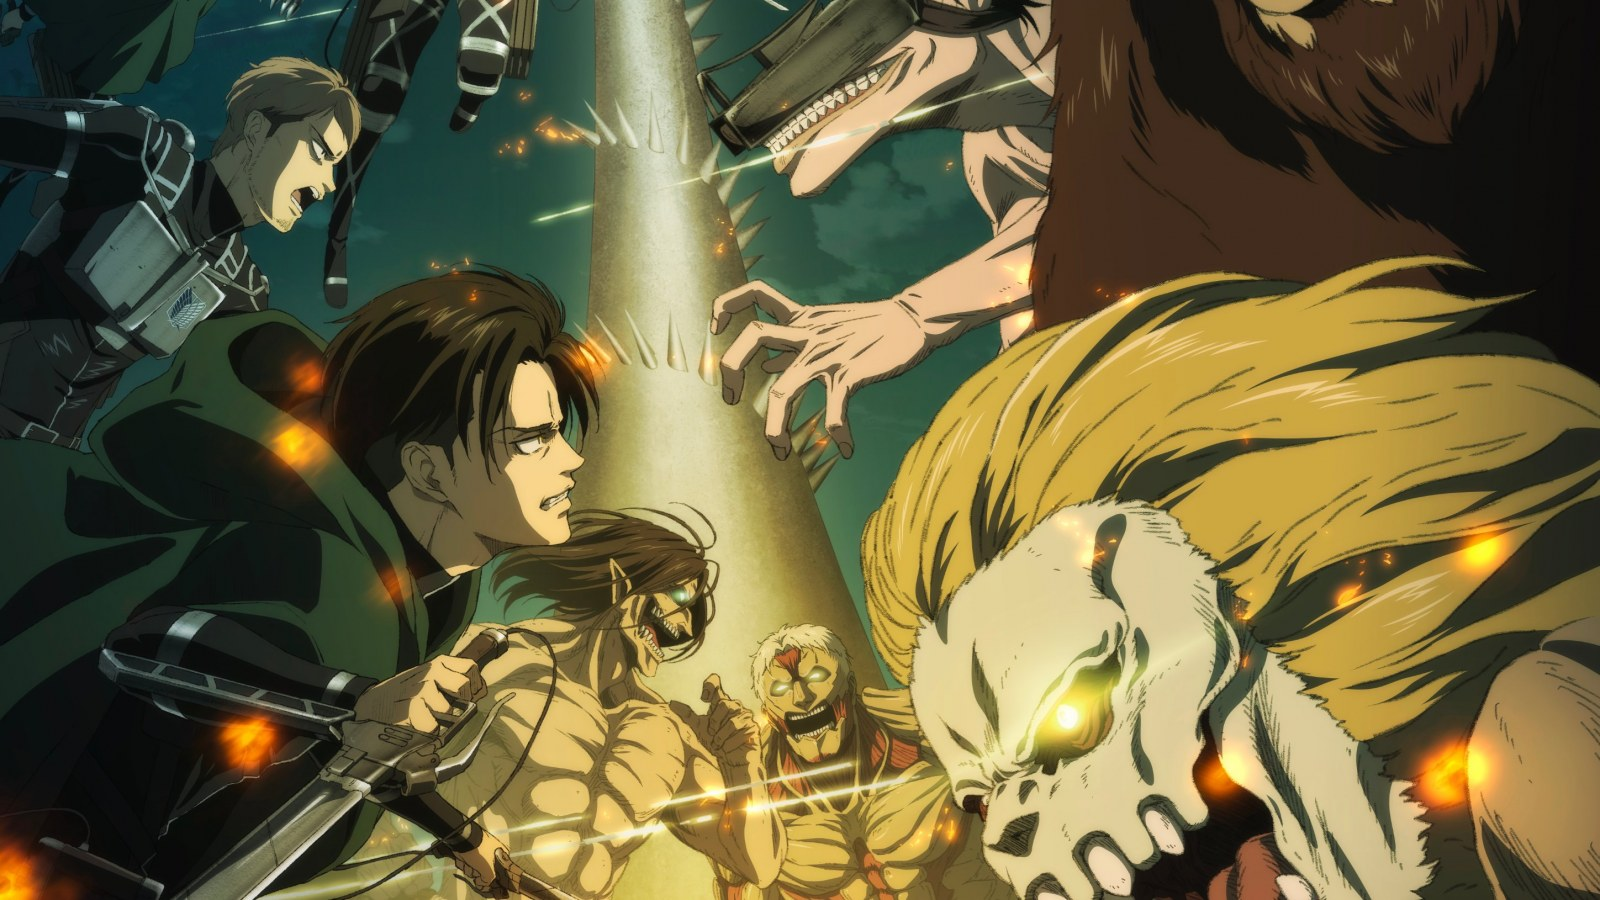 Attack On Titan Wallpaper Season 4 Attack On Titan Season 4 Episode 6 Release Date And How To Watch Online attack on titan season 4 episode 6